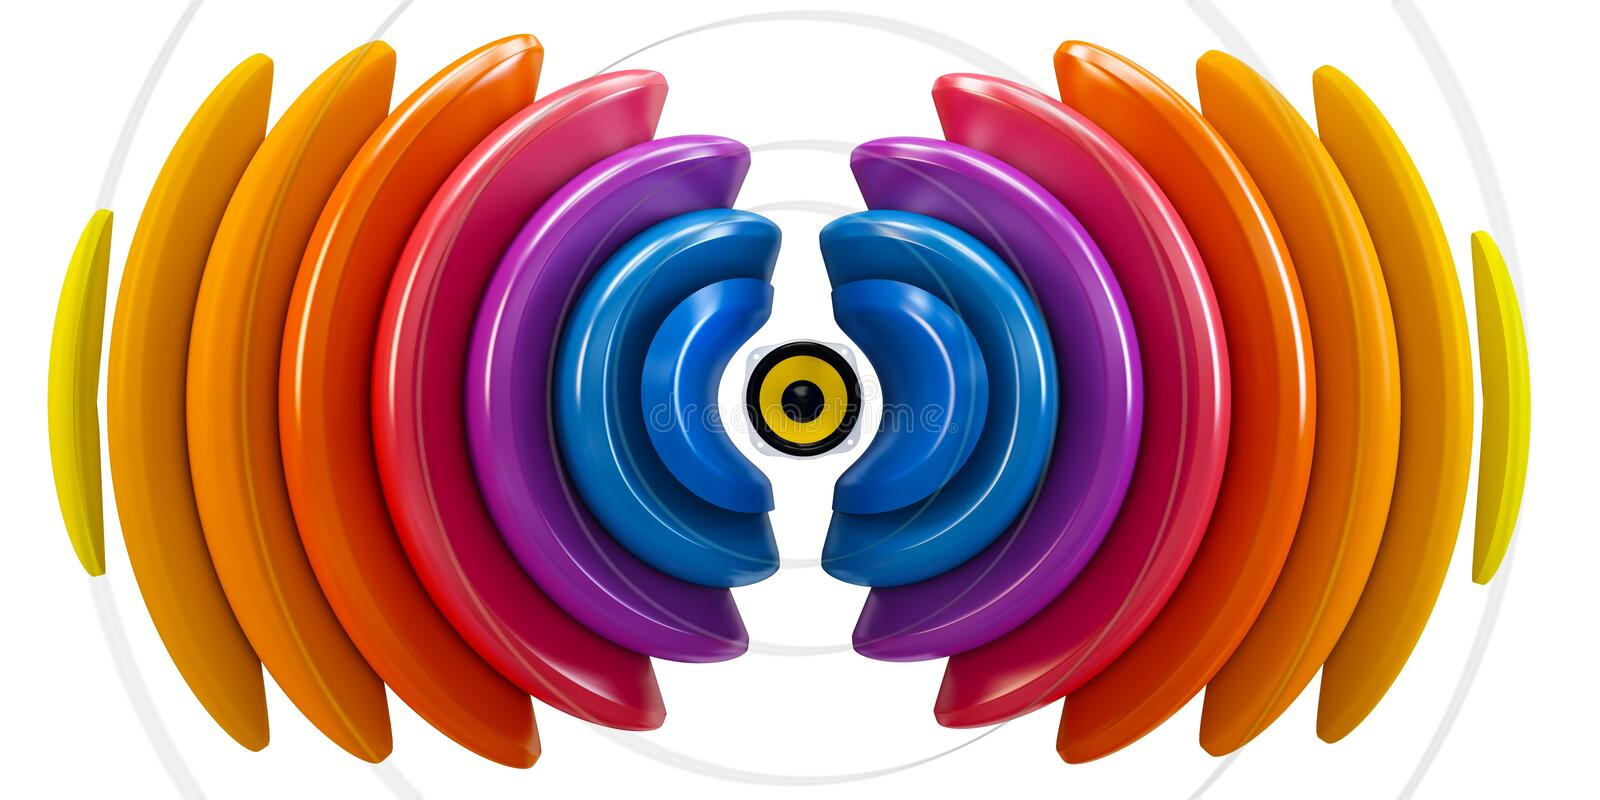 Download 3d sound wave with speaker stock illustration. Image of glow - 28414316